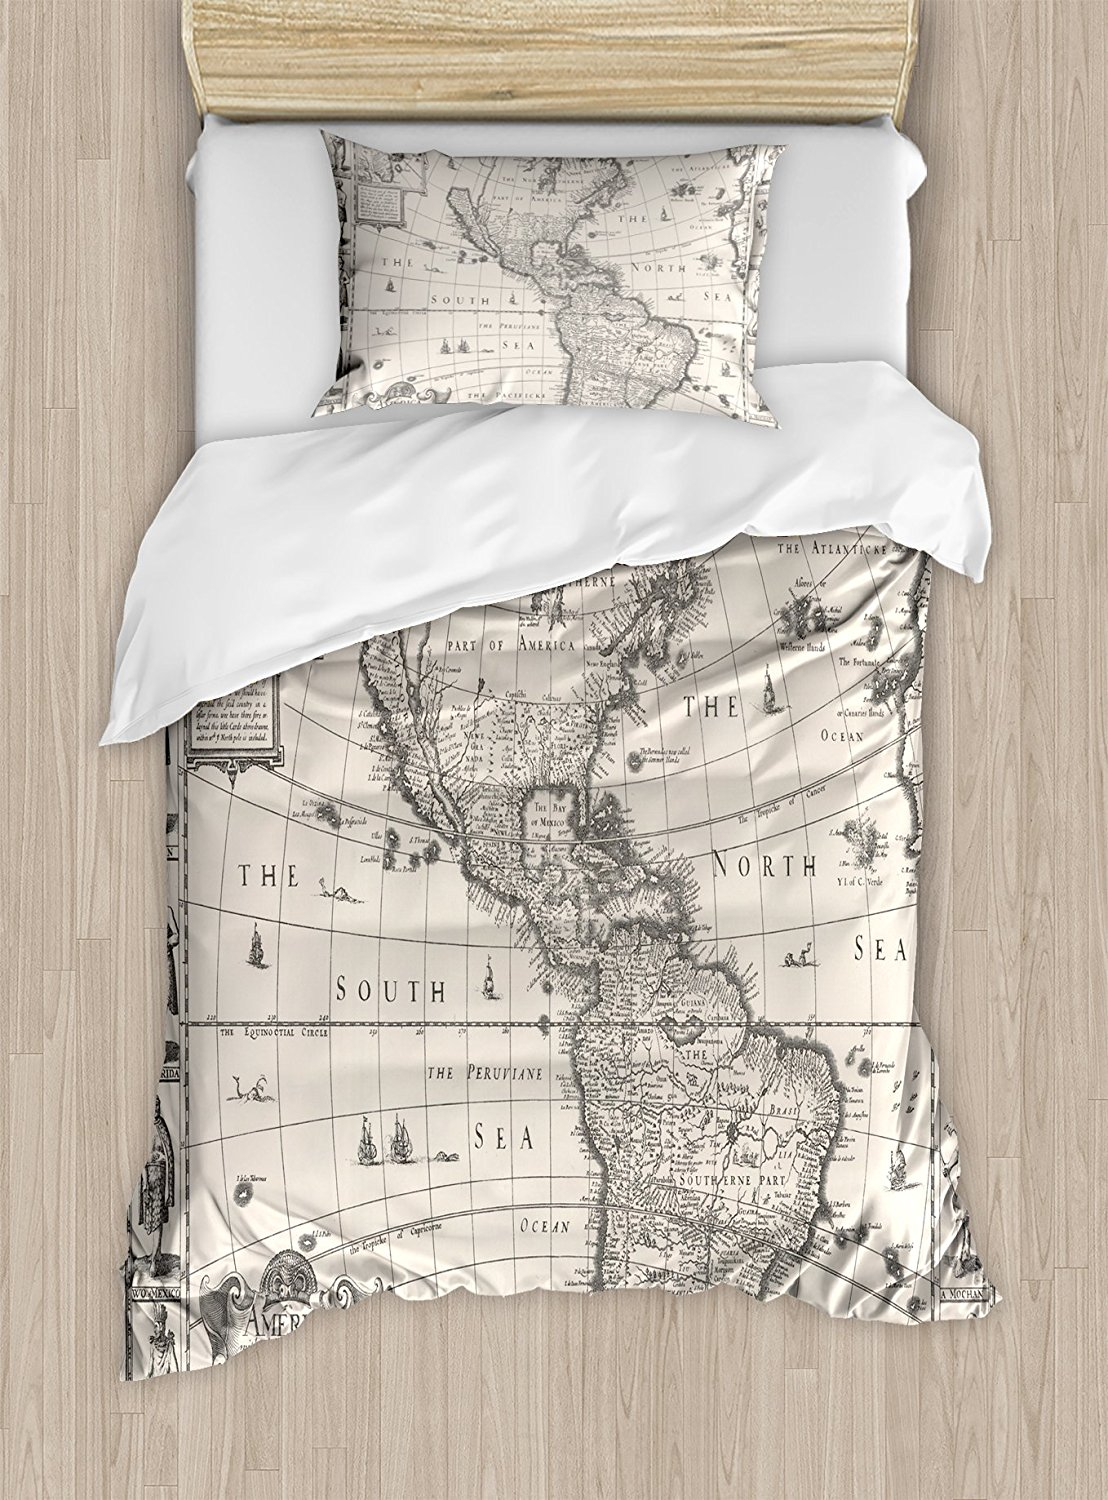 World Map Duvet Cover Set Antique Map America in 1600s World in Medieval Time Ancient Era in Retro Style 4 Piece Bedding Set